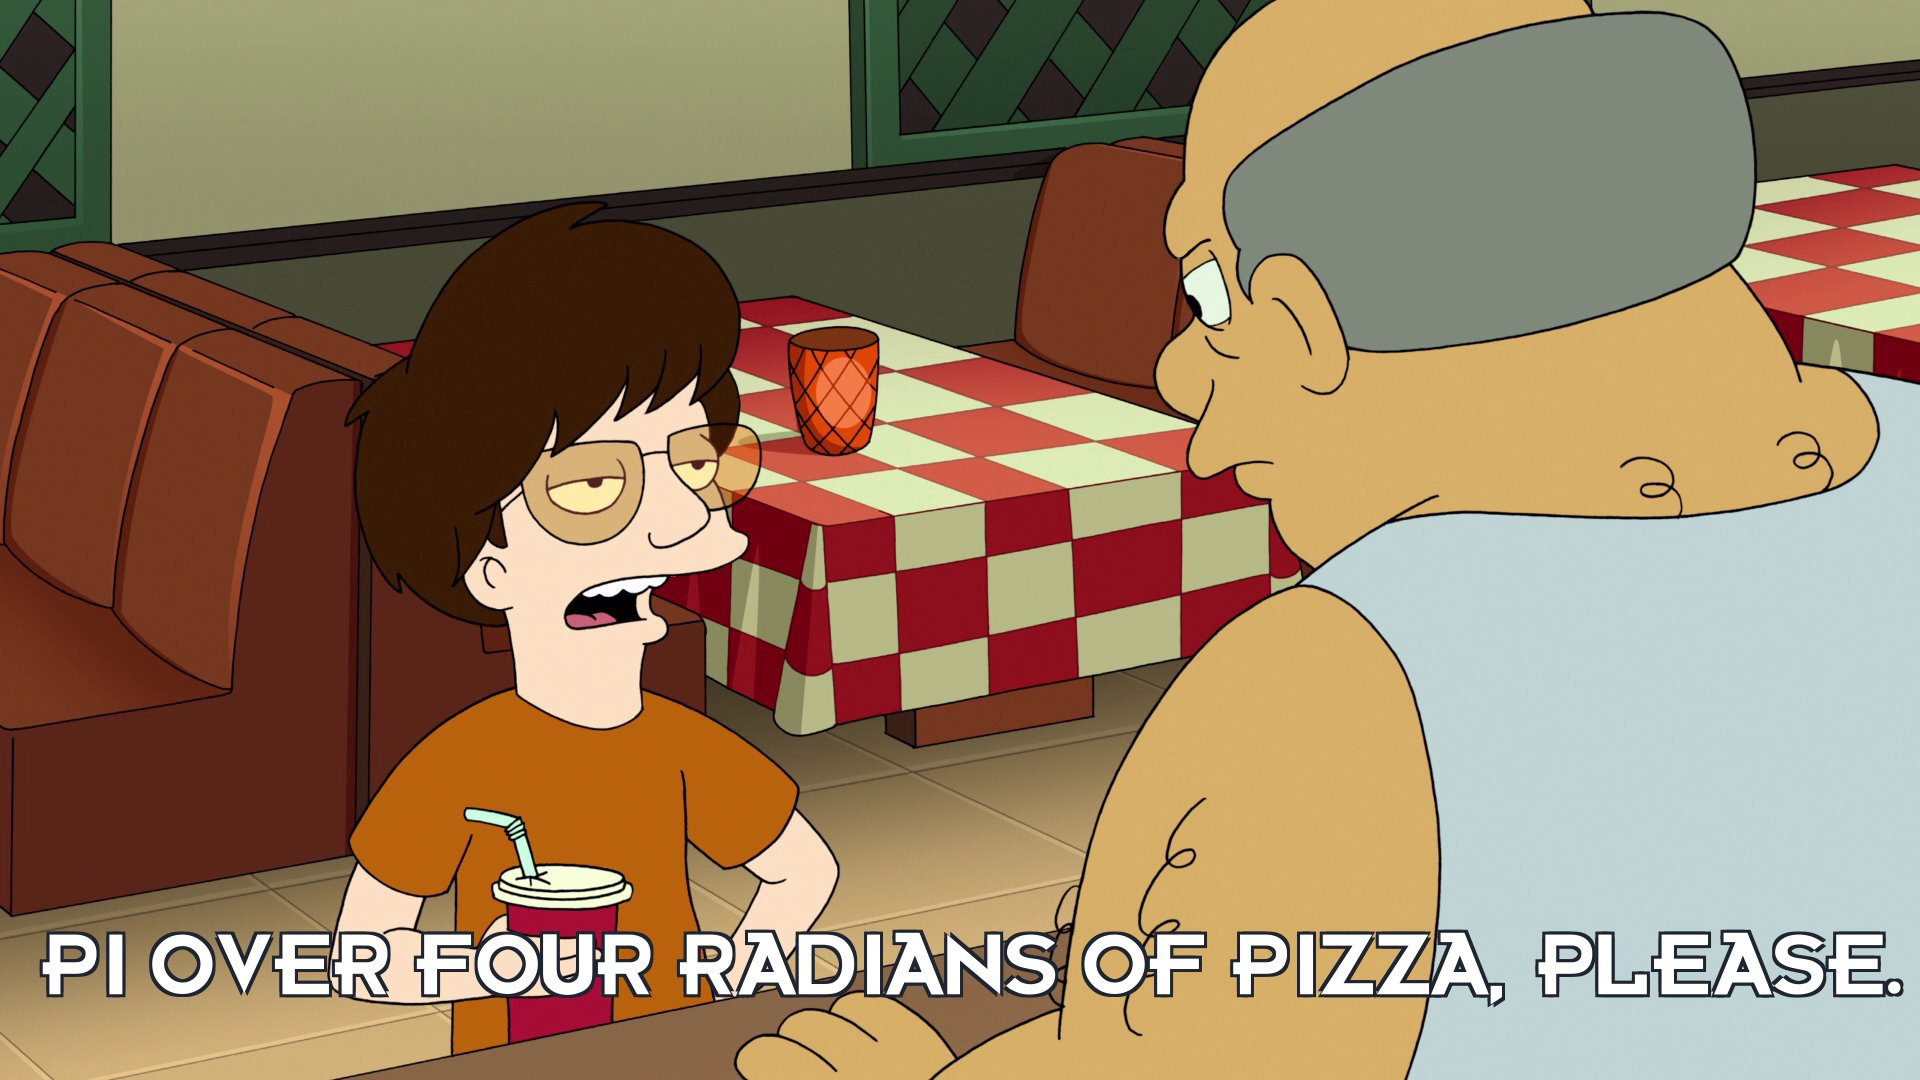 Josh Gedgie: Pi over four radians of pizza, please.